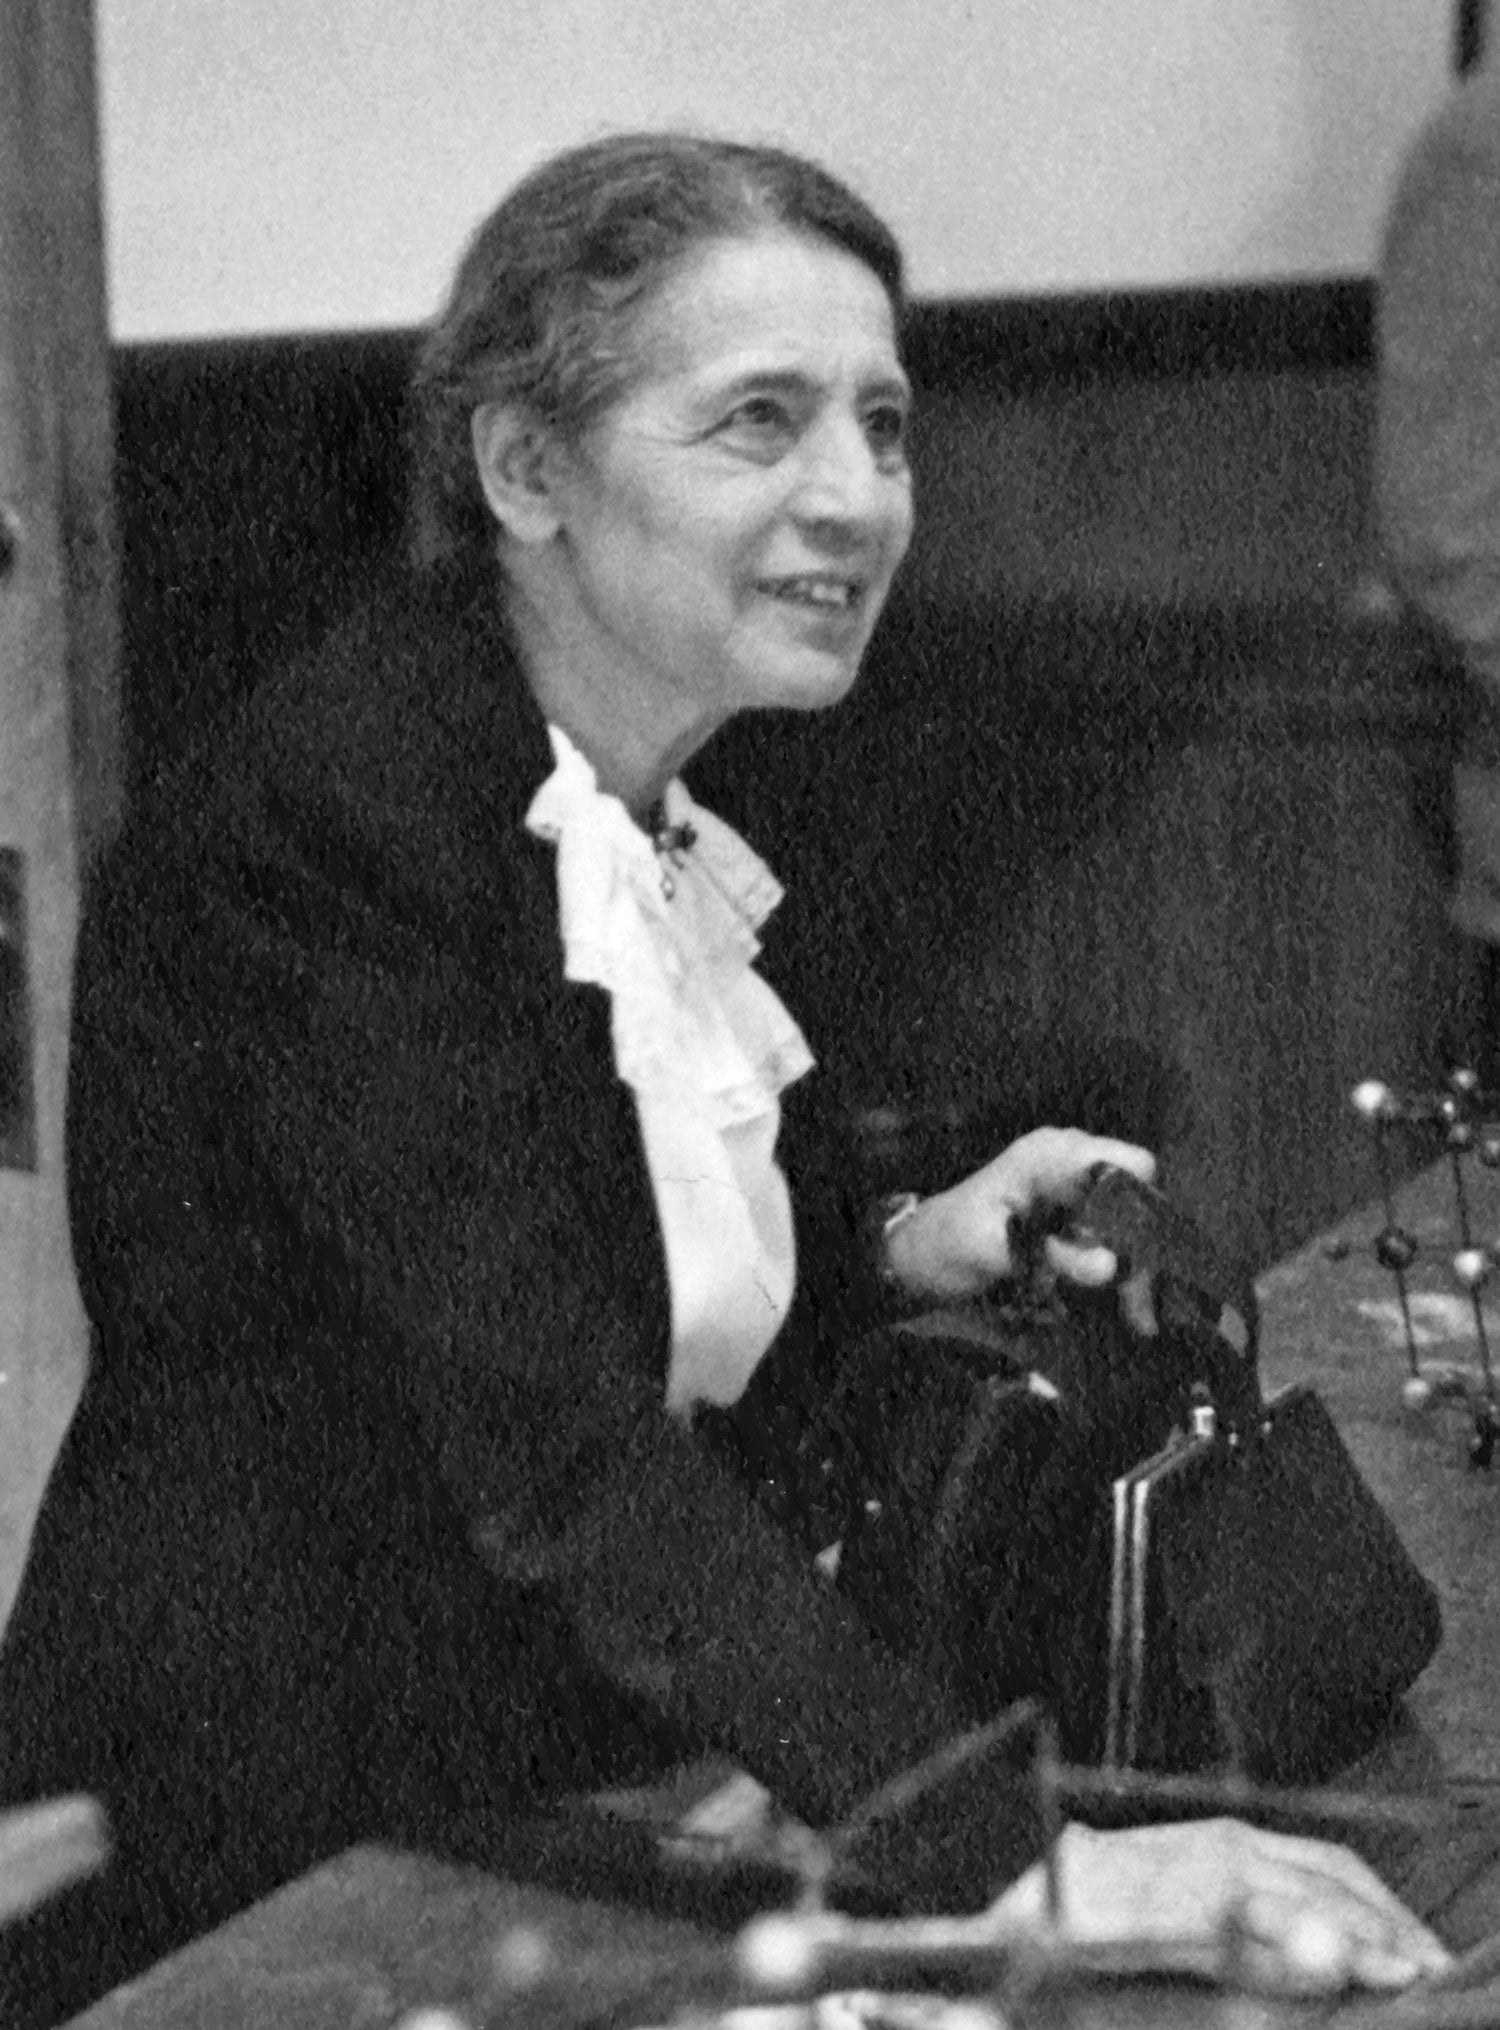 Black and white photograph of Lise Meitner lecturing at Catholic University in Washington D.C. in 1946